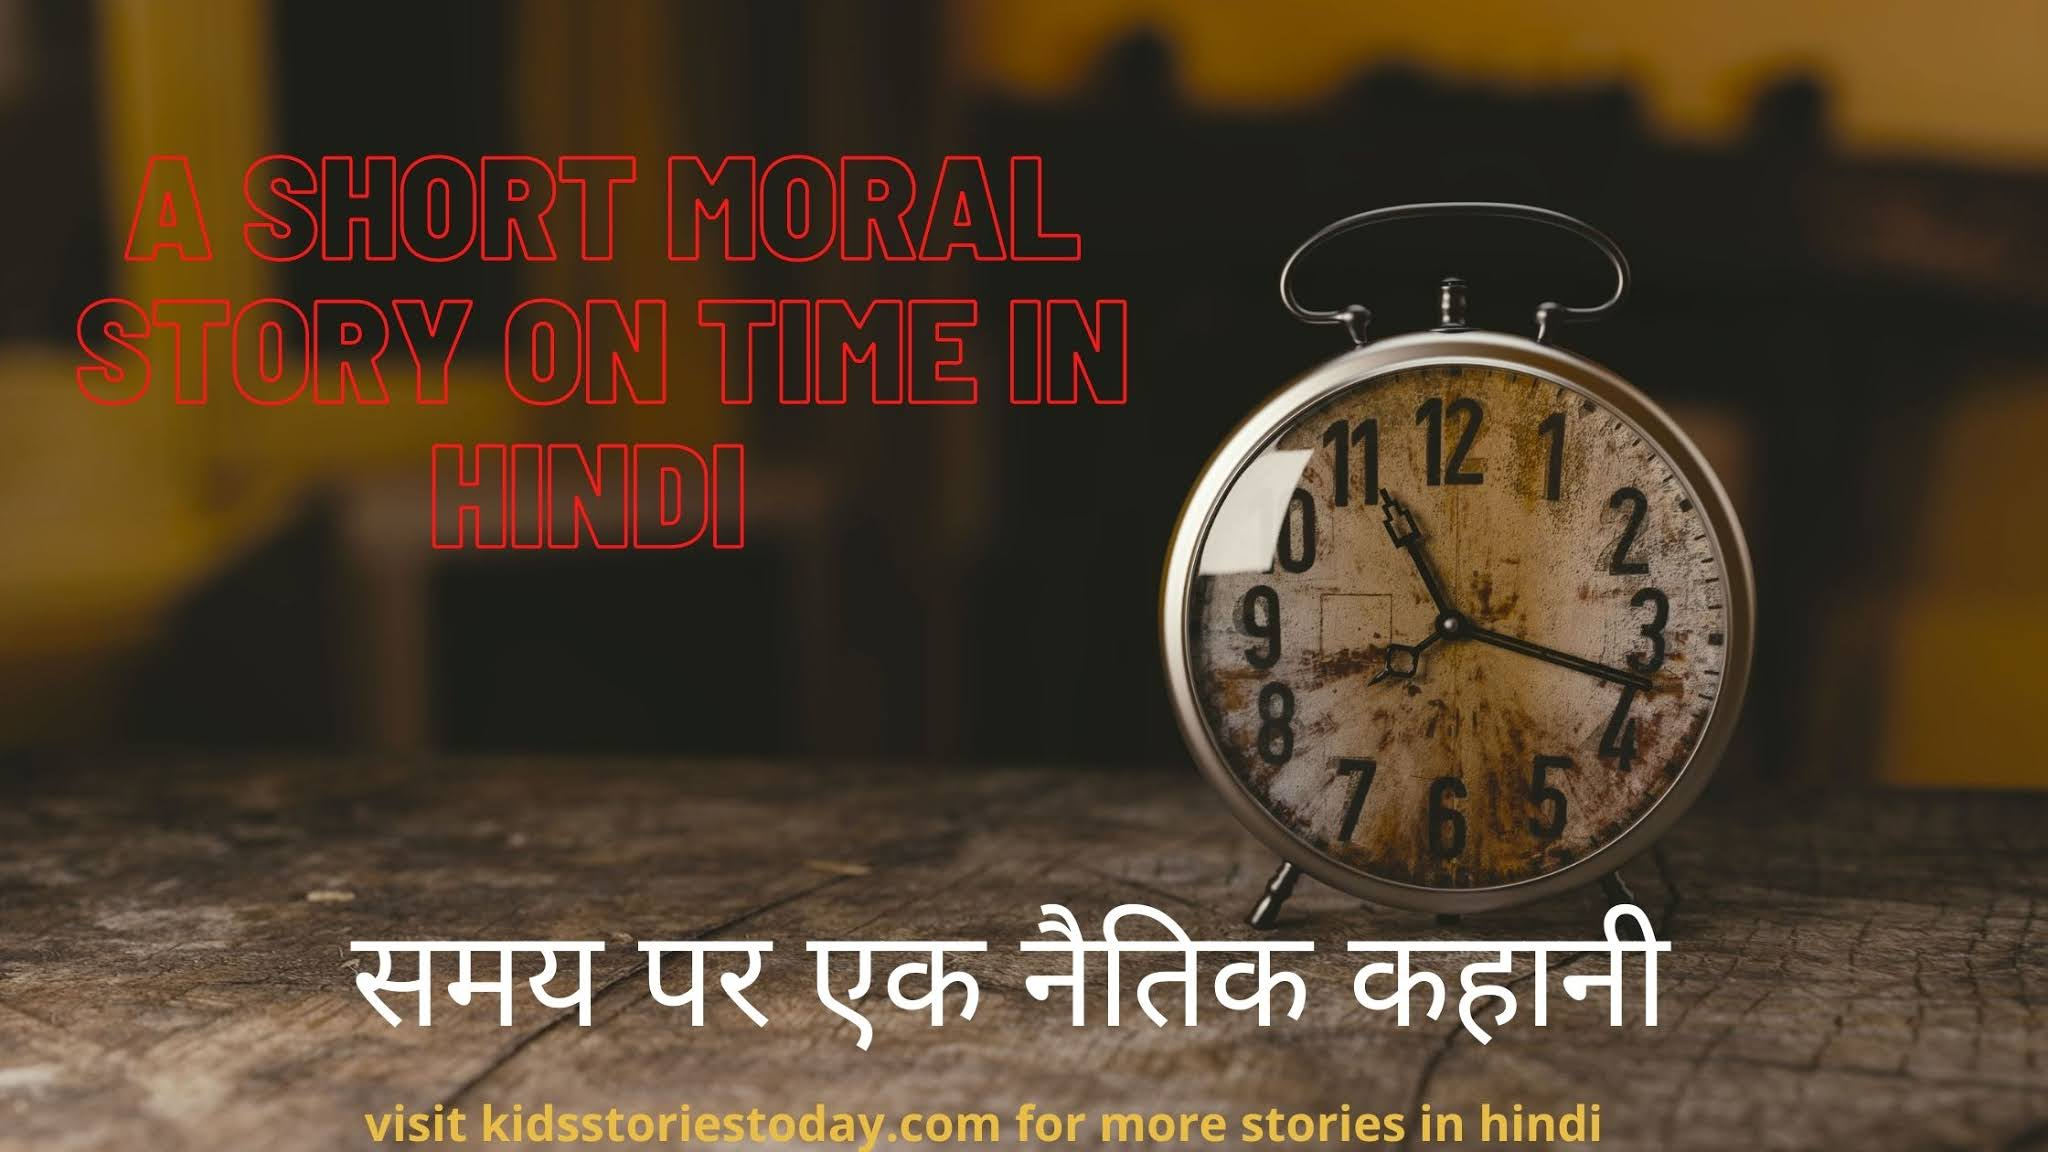 A short moral story on time in Hindi